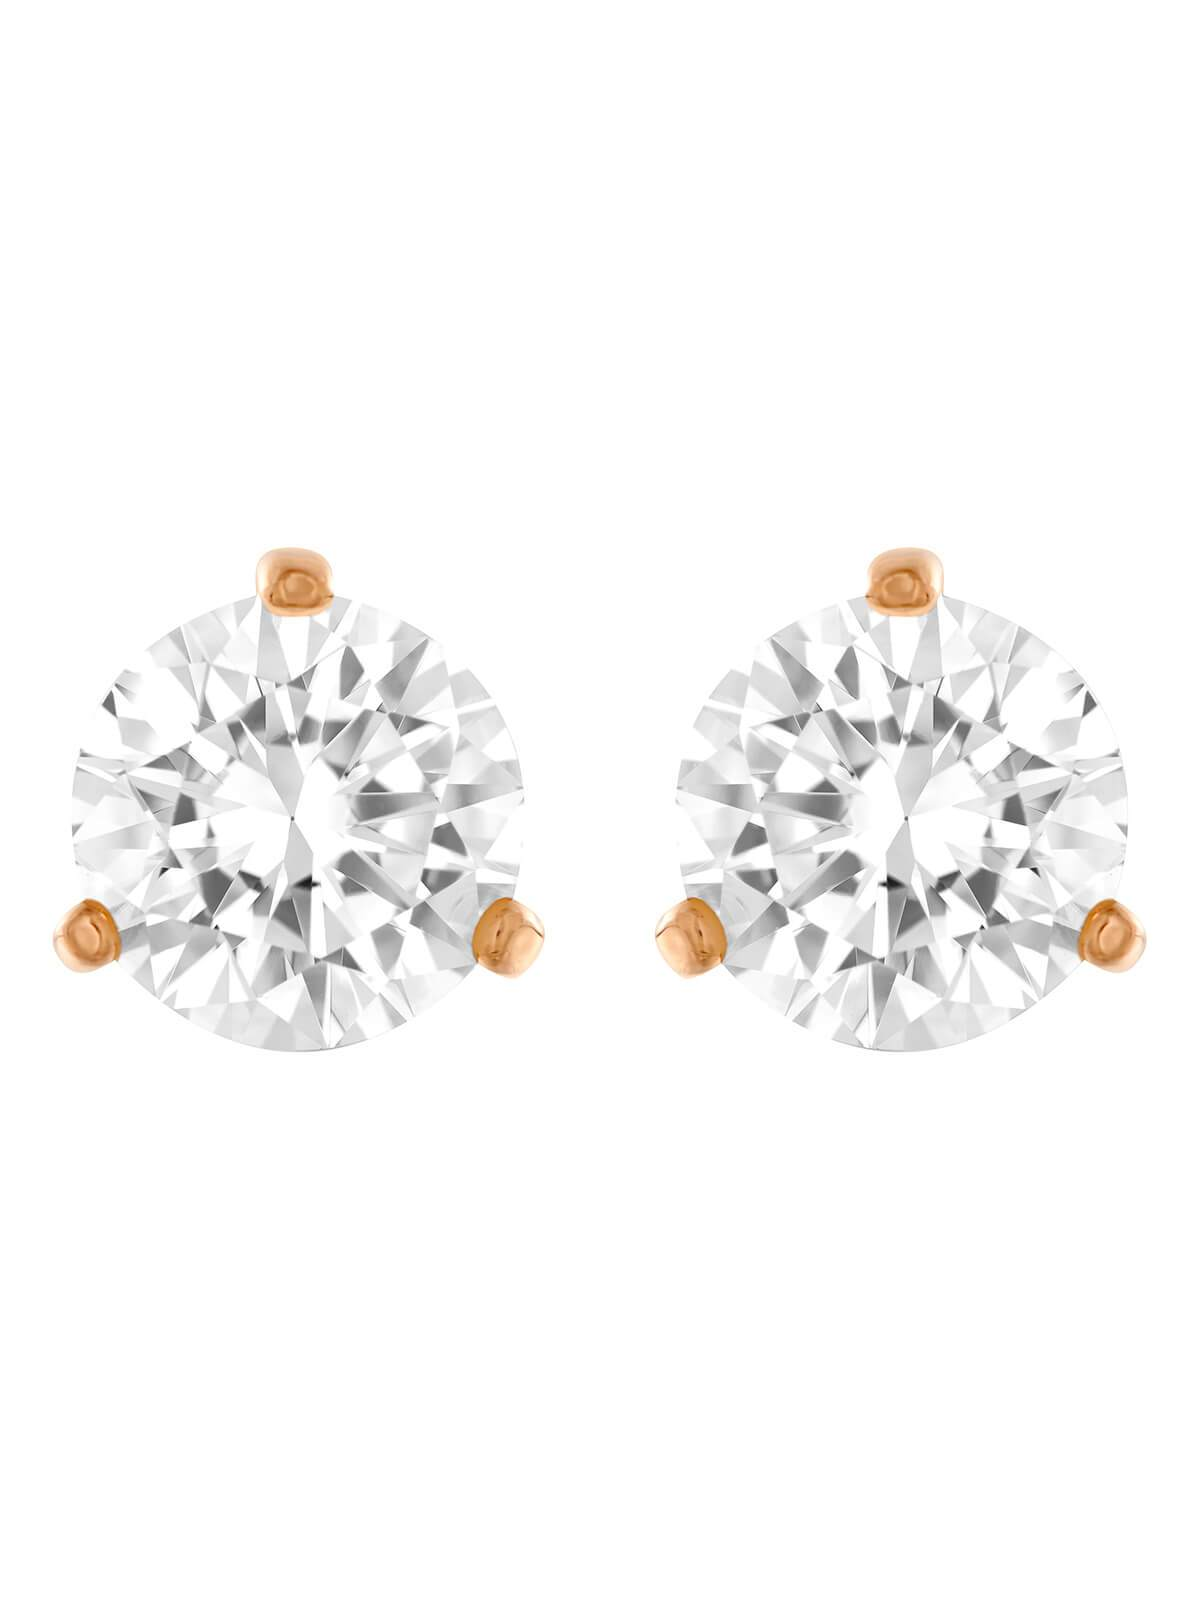 Swarovski Solitaire Rose Gold Plated and Clear Crystal Earrings 5112156